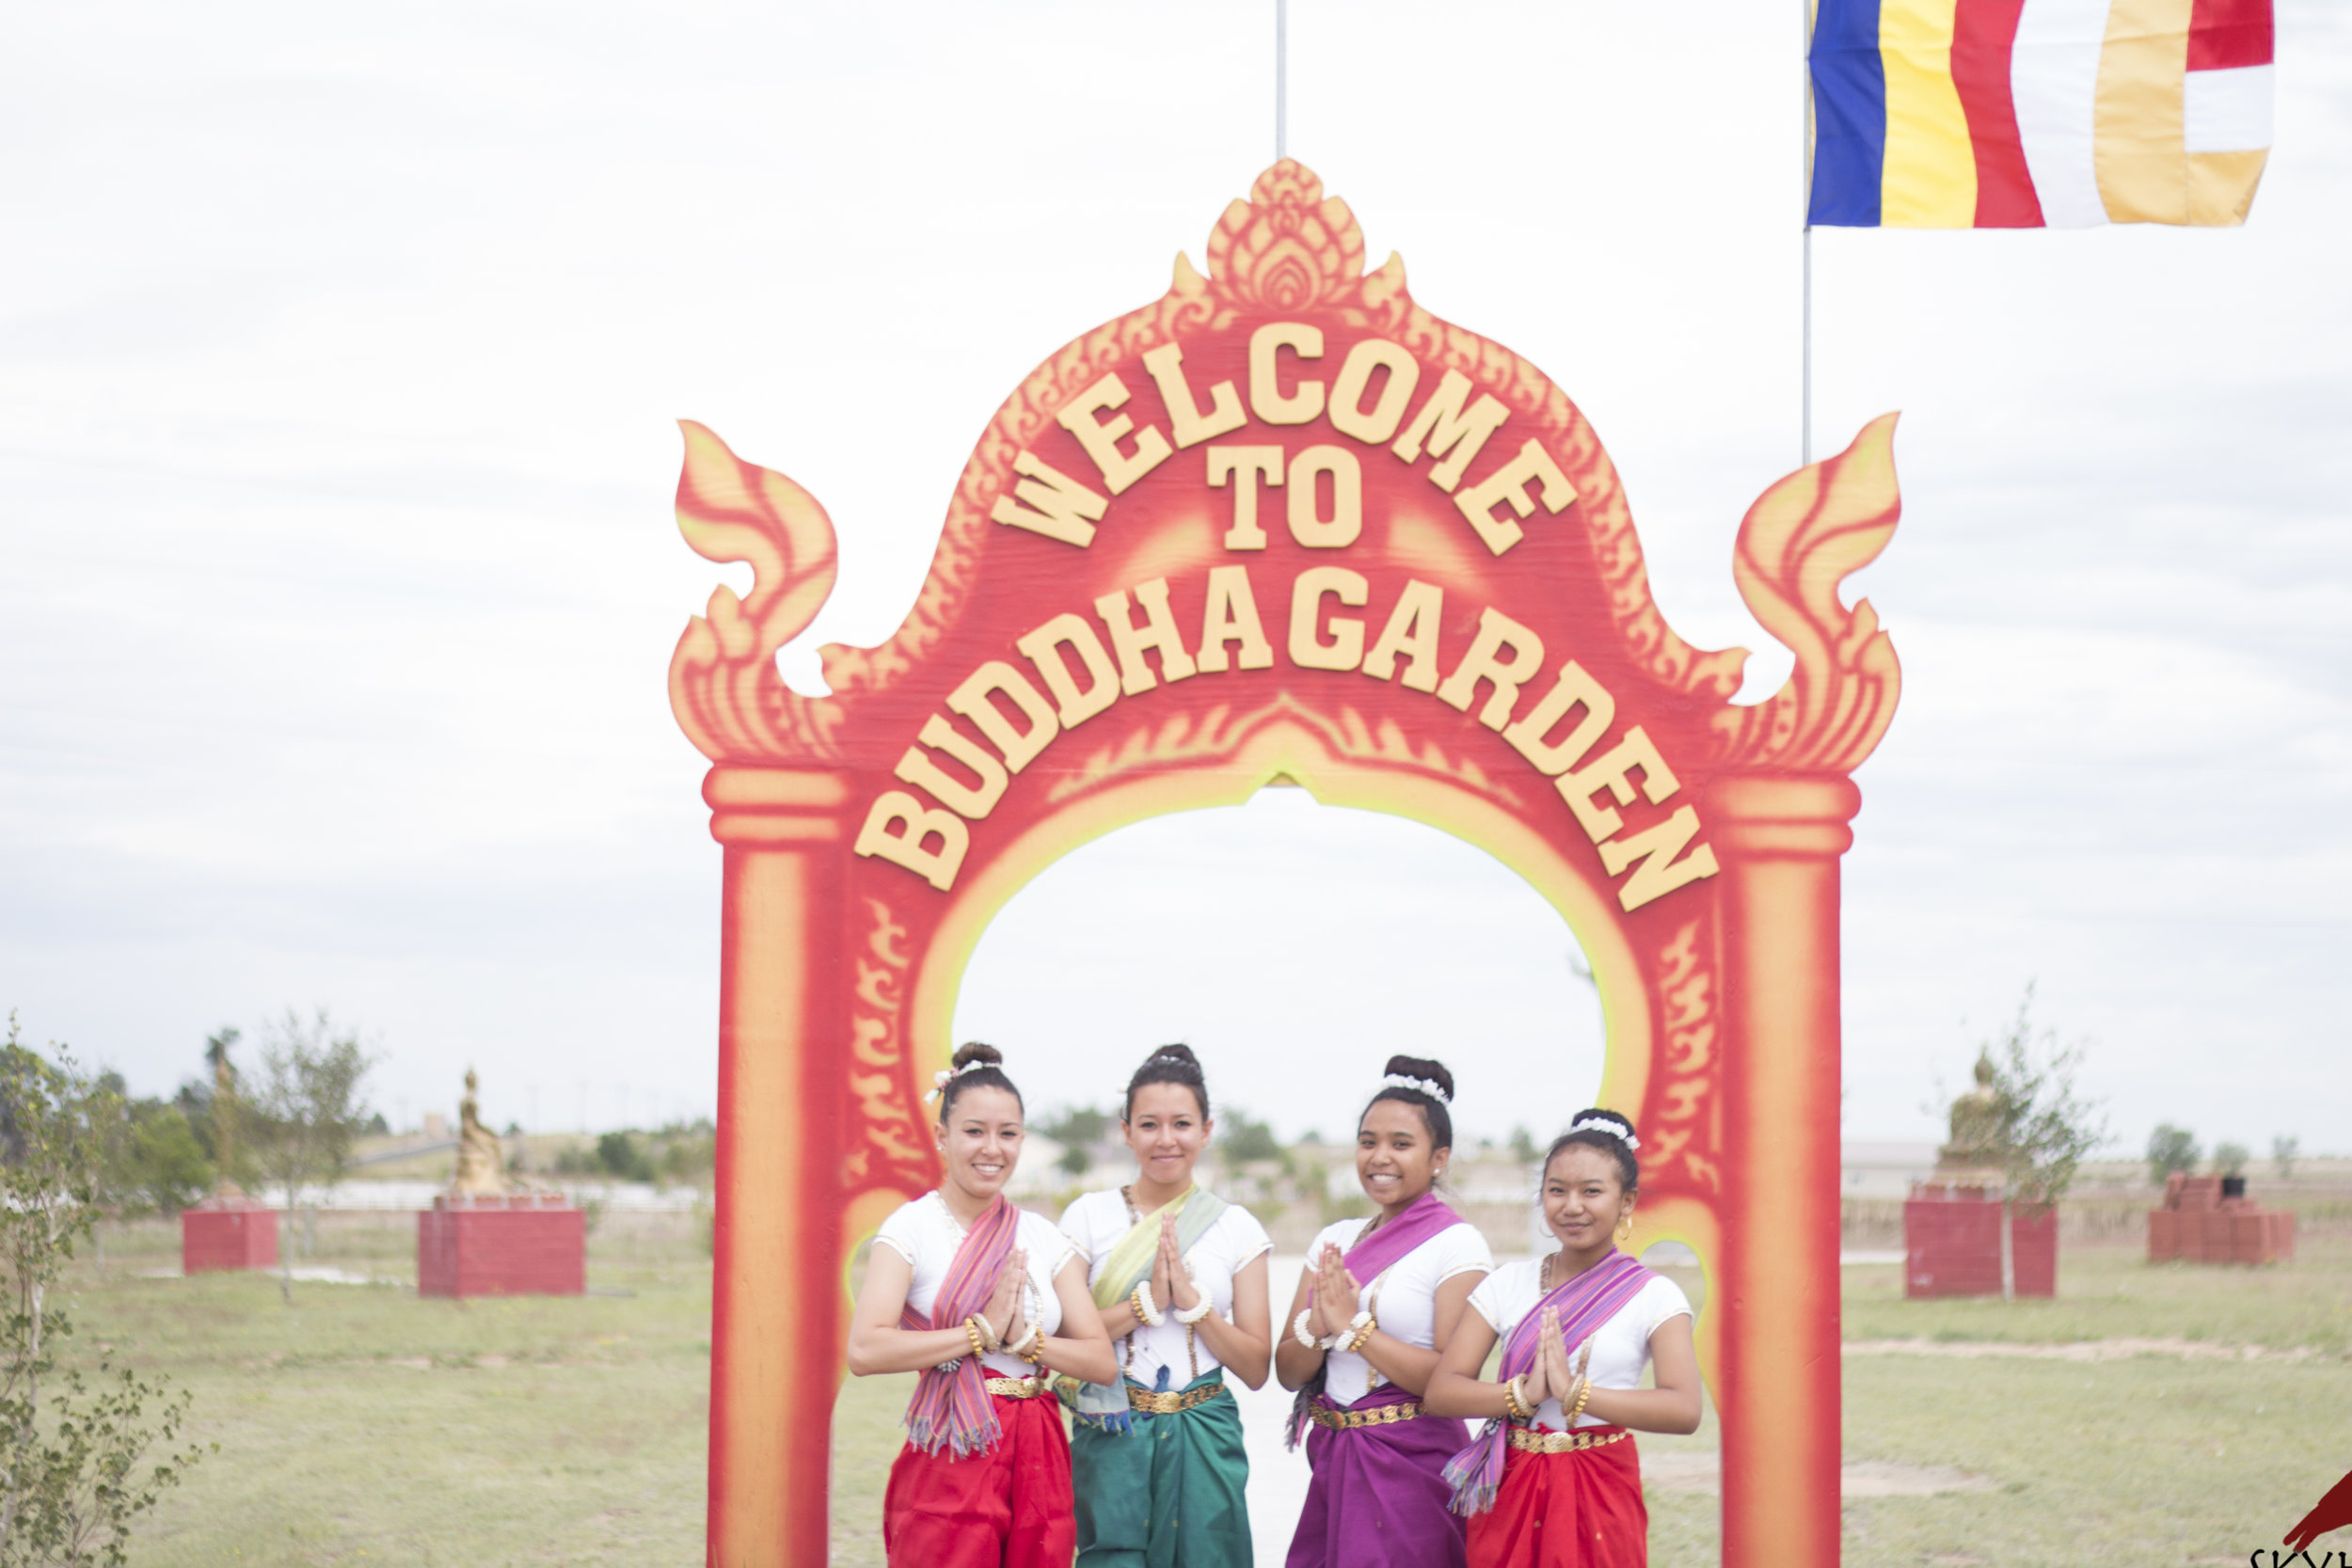 SOCCA dancers were asked to perform at the opening event for the new Laos temple in Brighton, CO